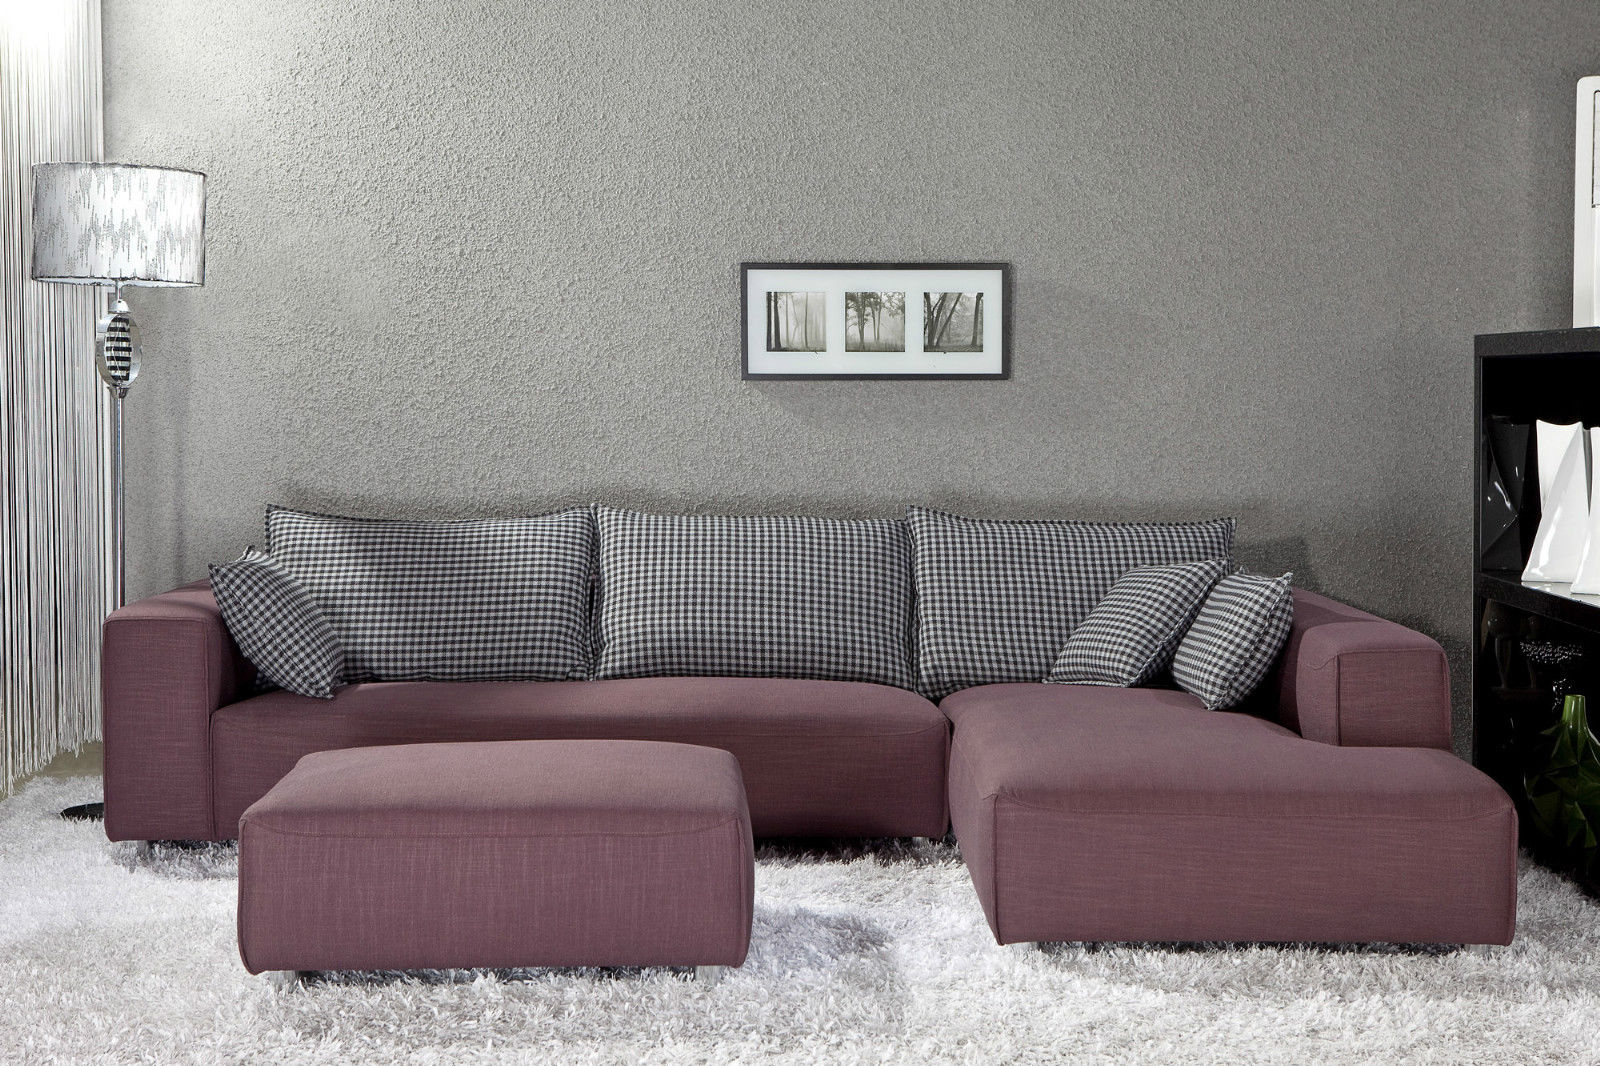 Wide Ottoman and Small Sectional Sofa beside Artistic Floor Lamp on White Carpet Rug